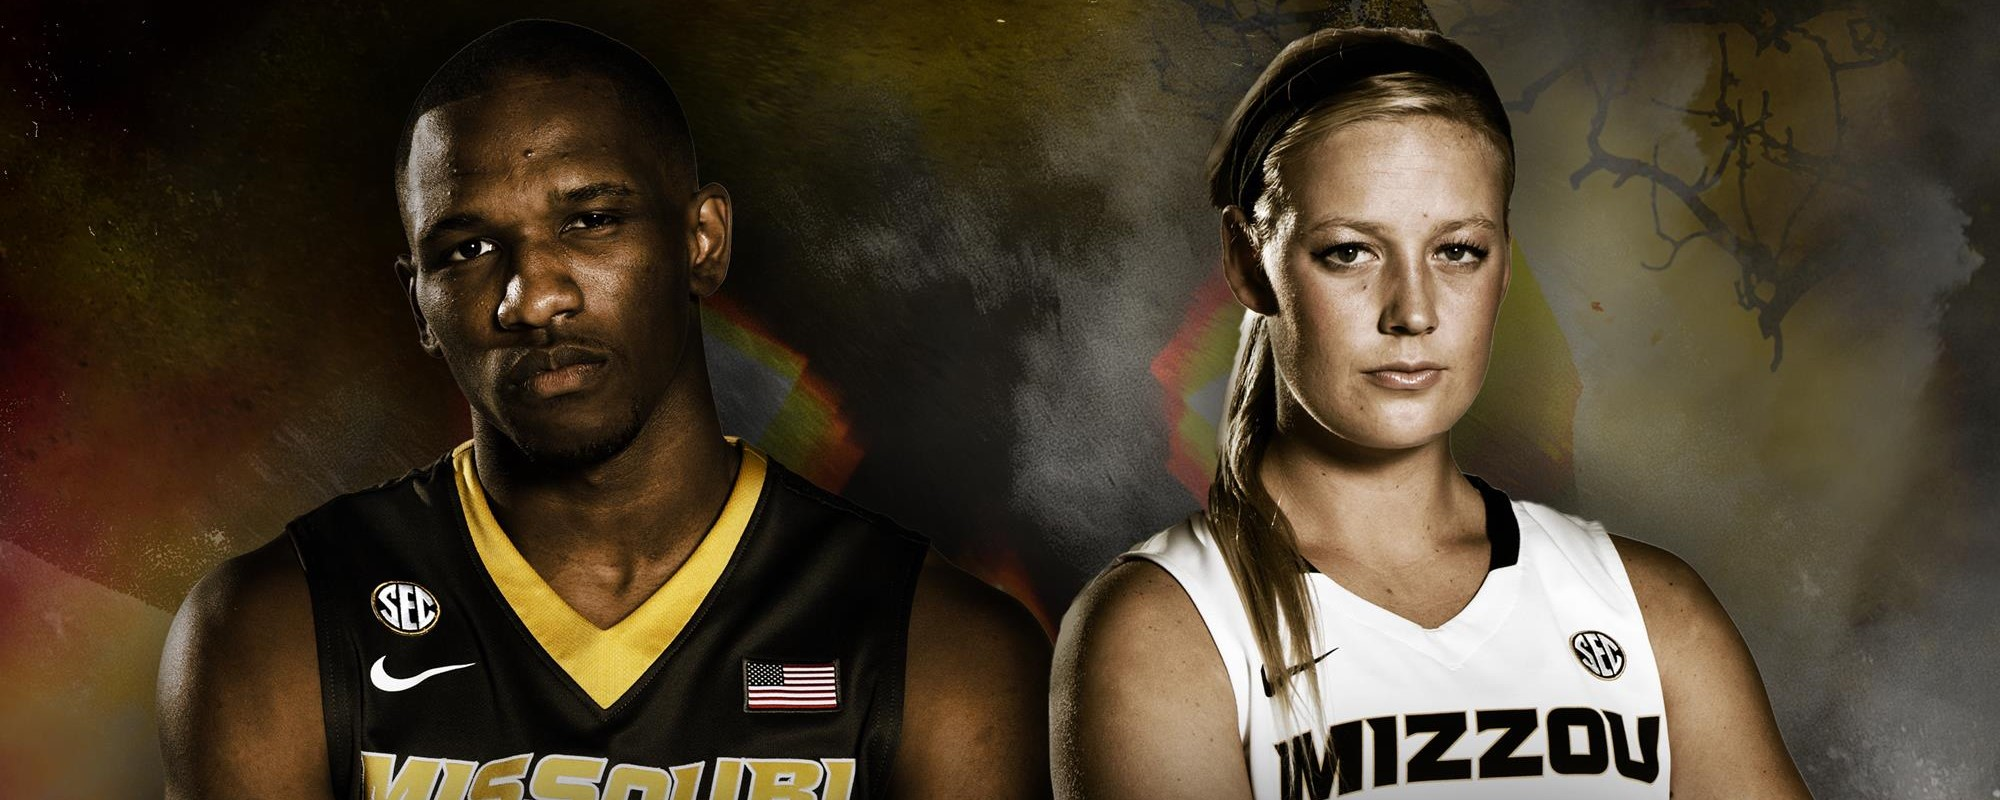 halloween & hoops coming to mizzou arena on friday - university of